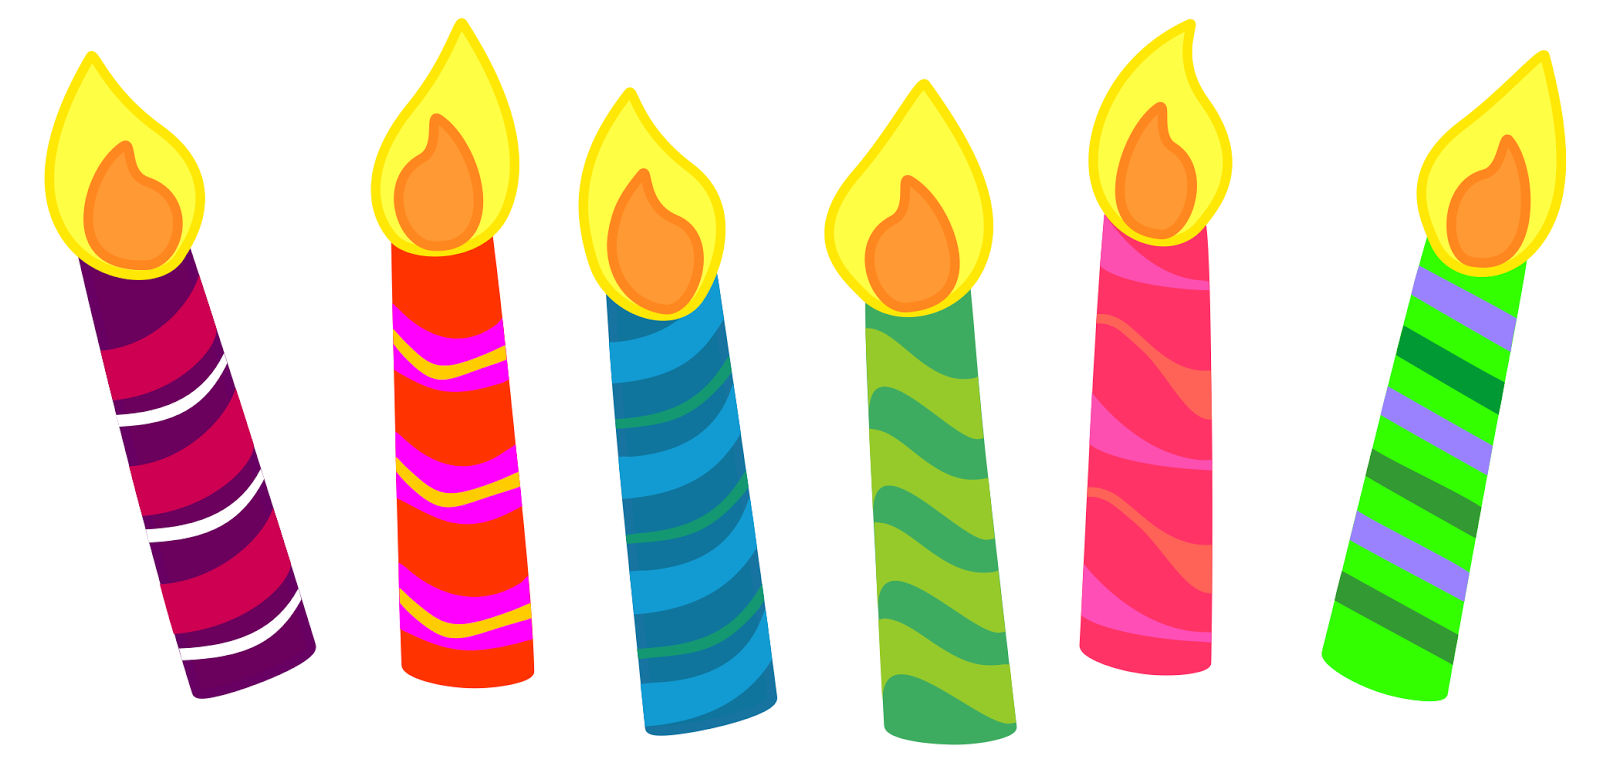 Candles clipart free large images